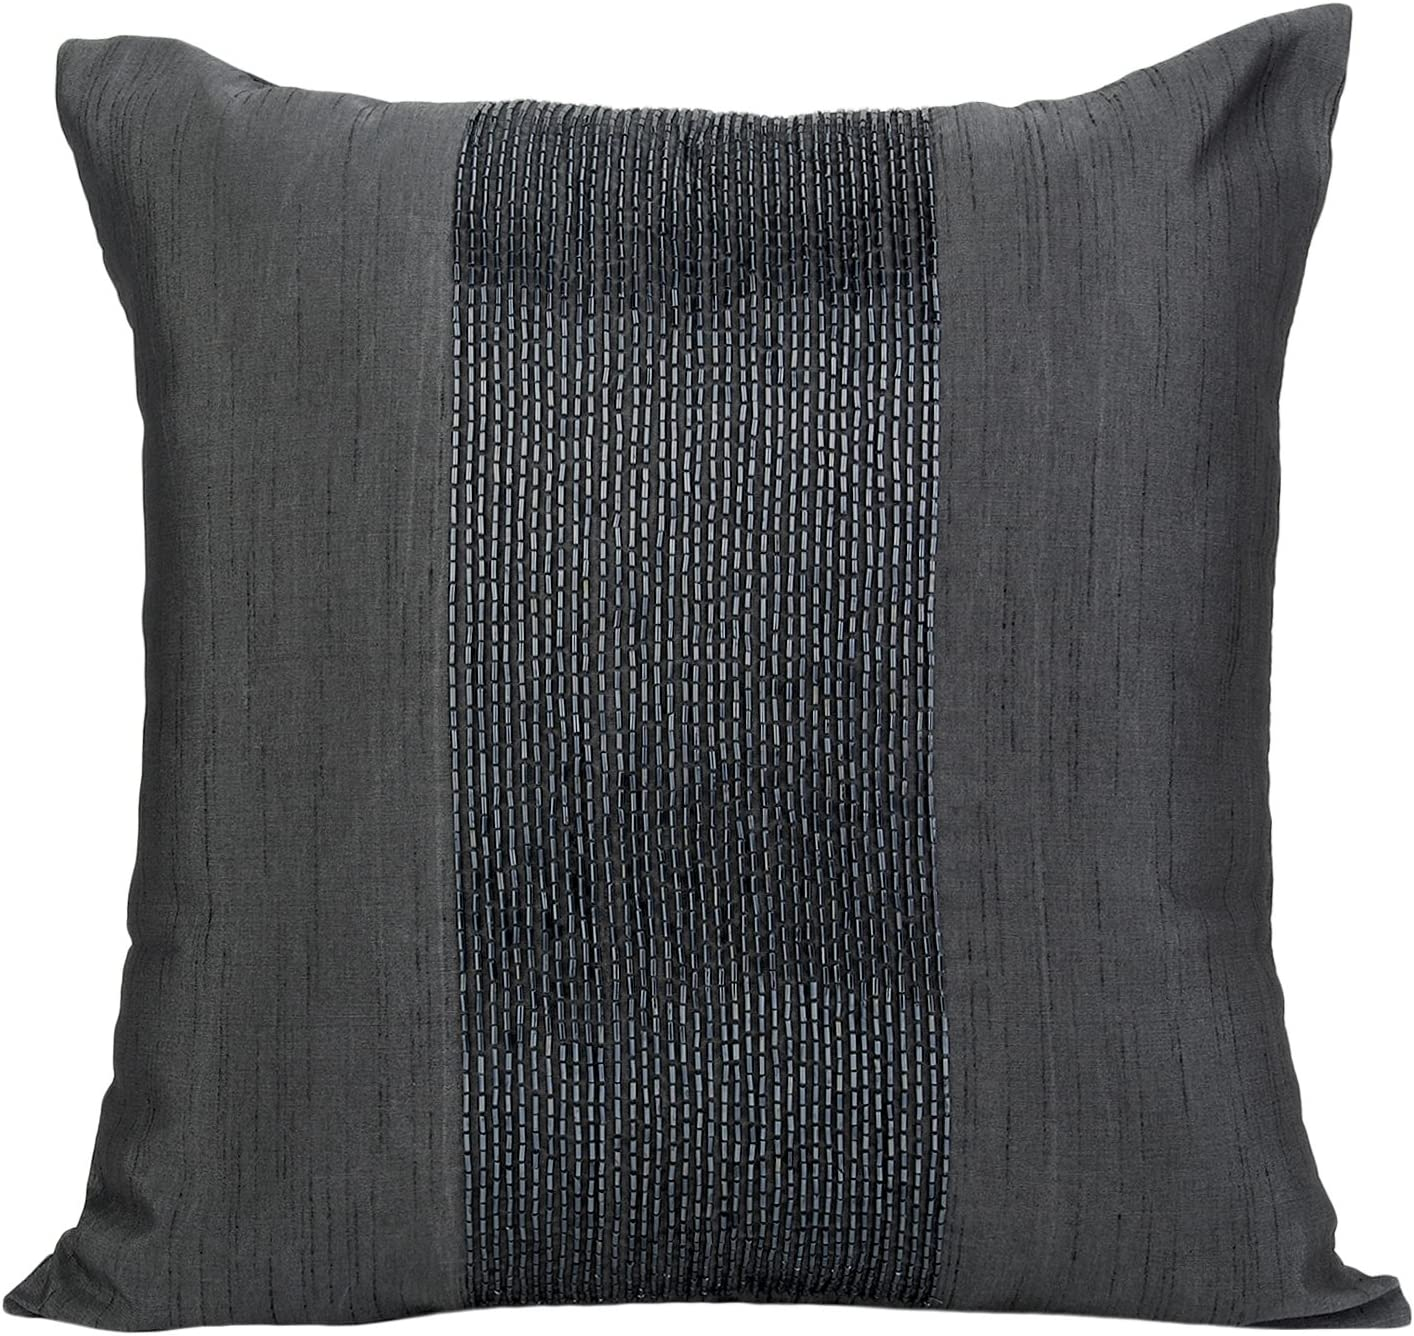 The White Petals Charcoal Grey Decorative Pillow Cover - Beaded Charcoal  Grey Throw Pillow Cover in Panel Embroidery - Accent Pillows for Couch &  Bed